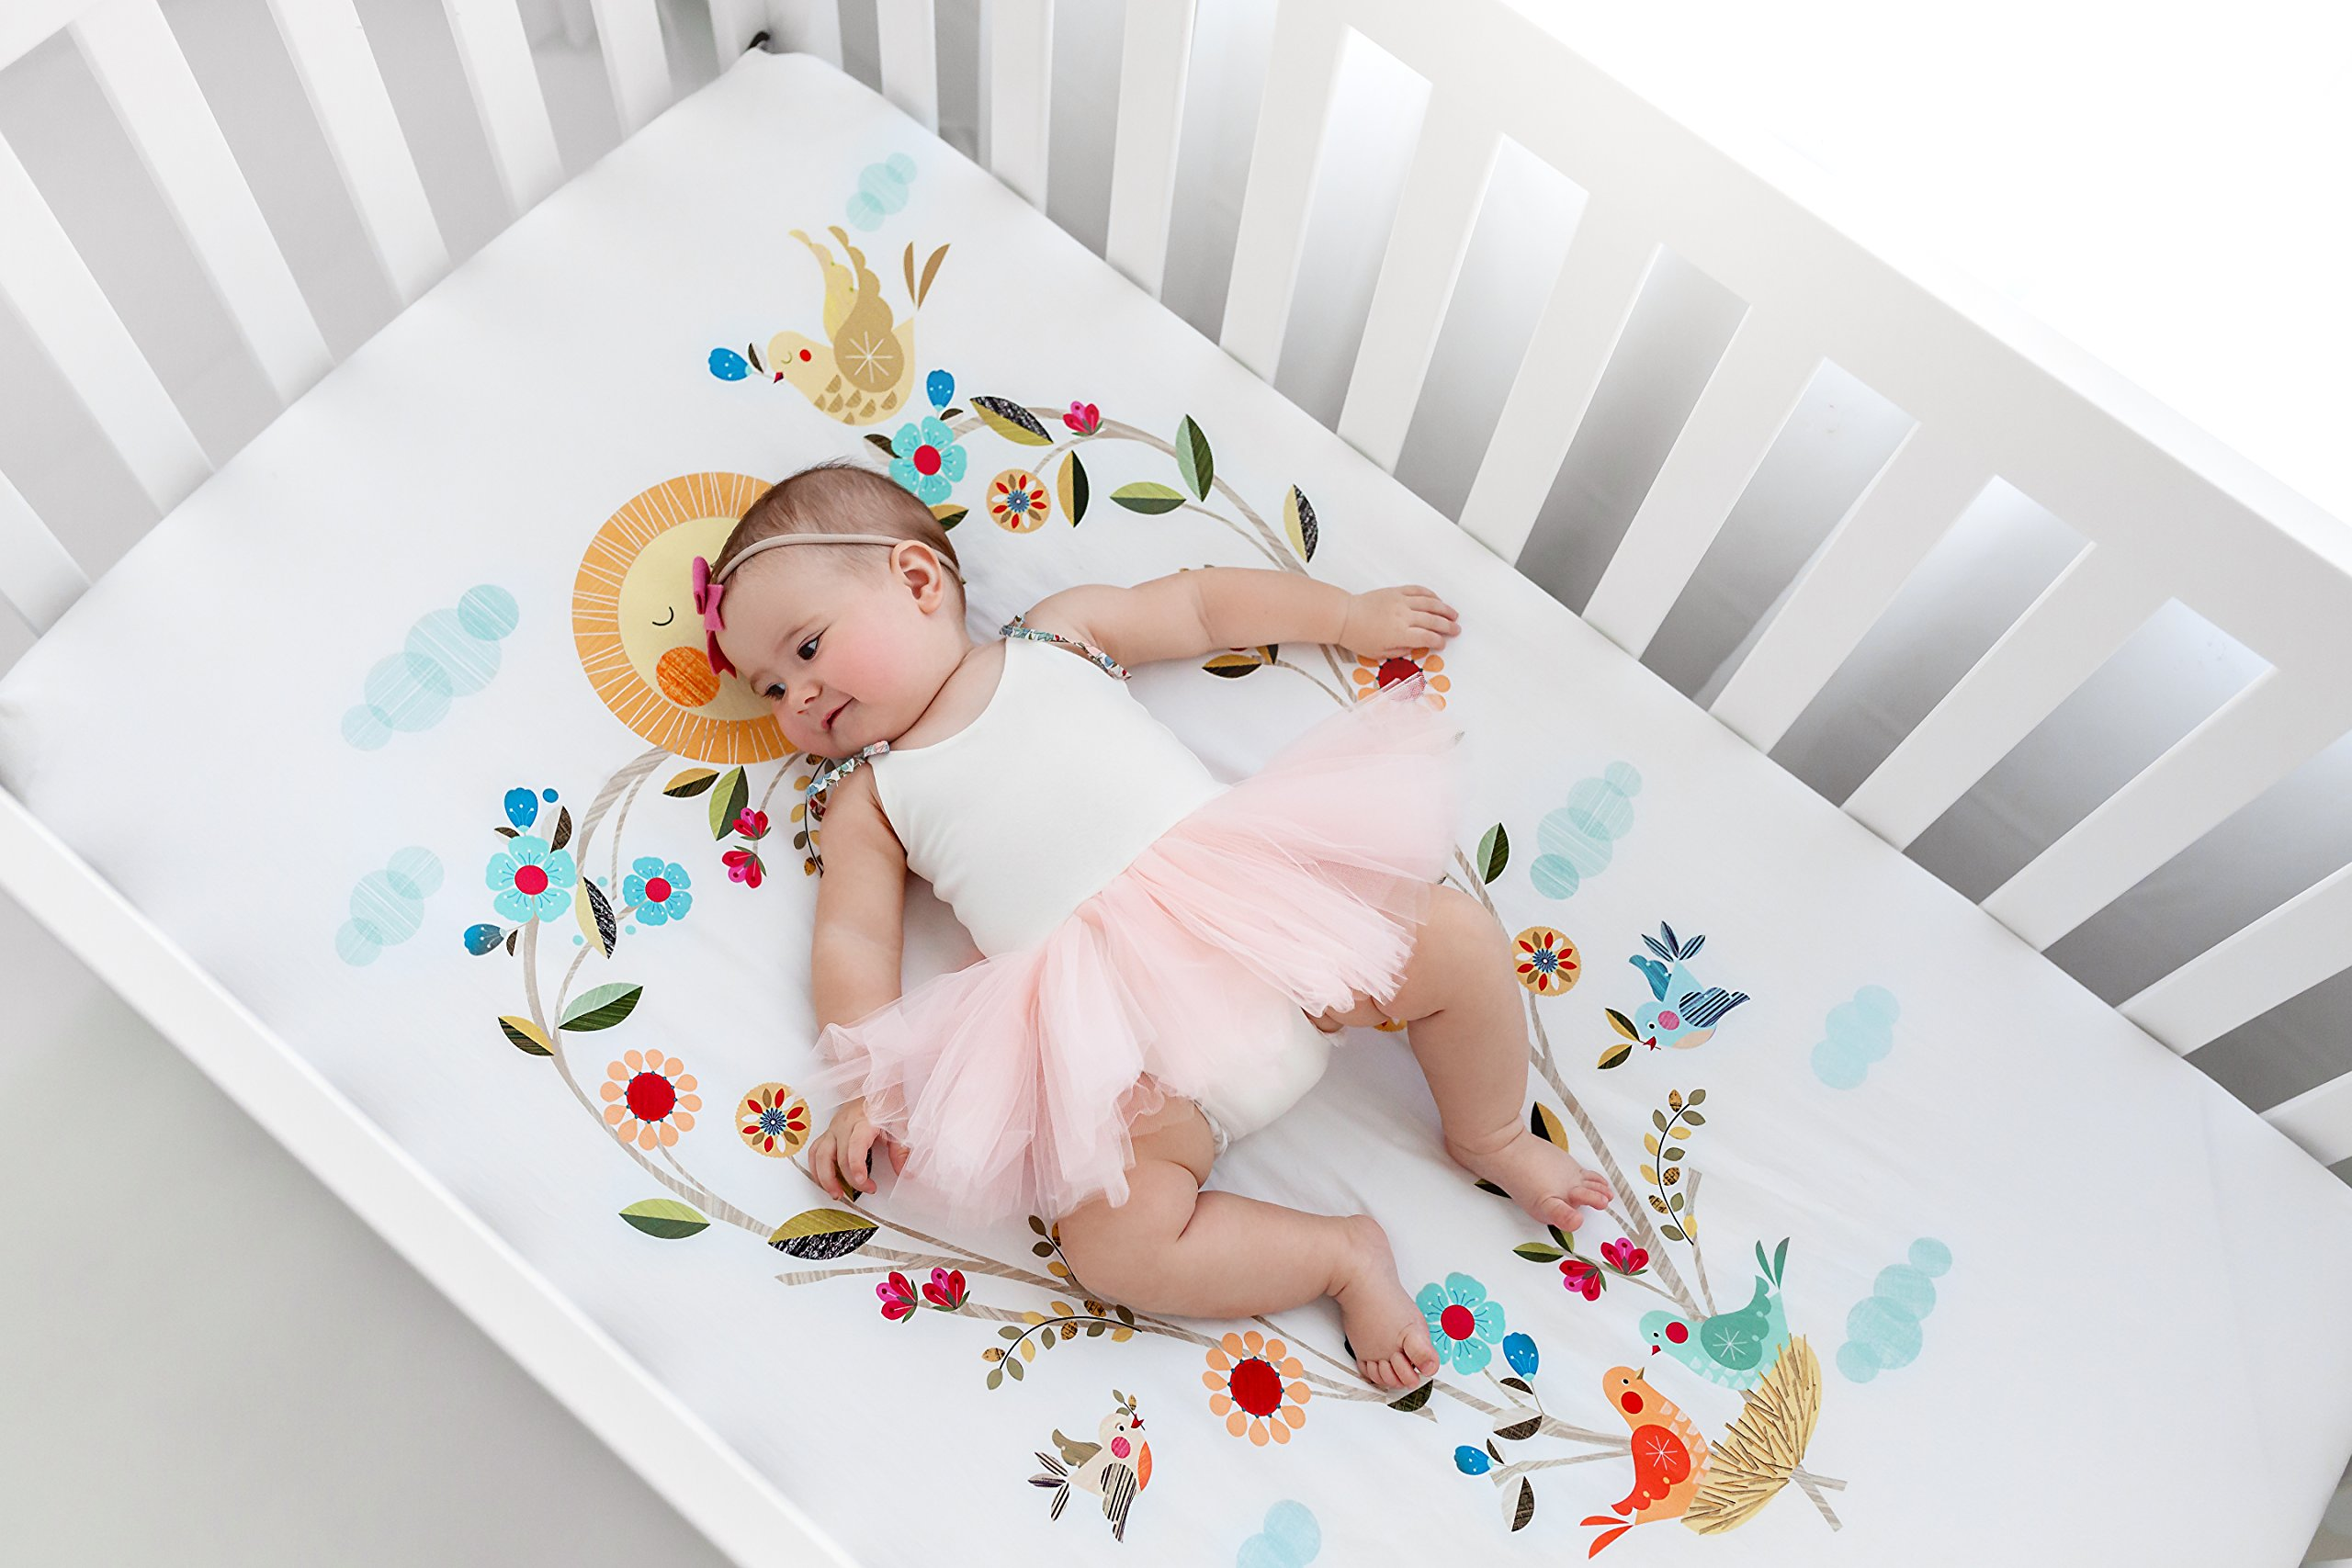 Rookie Humans 100% Organic Cotton Sateen Fitted Crib Sheet: Love Blooms. Complements Modern Nursery Room, Use as a Photo Background for Your Baby Pictures. Standard crib size (52 x 28 inches). by Rookie Humans (Image #2)